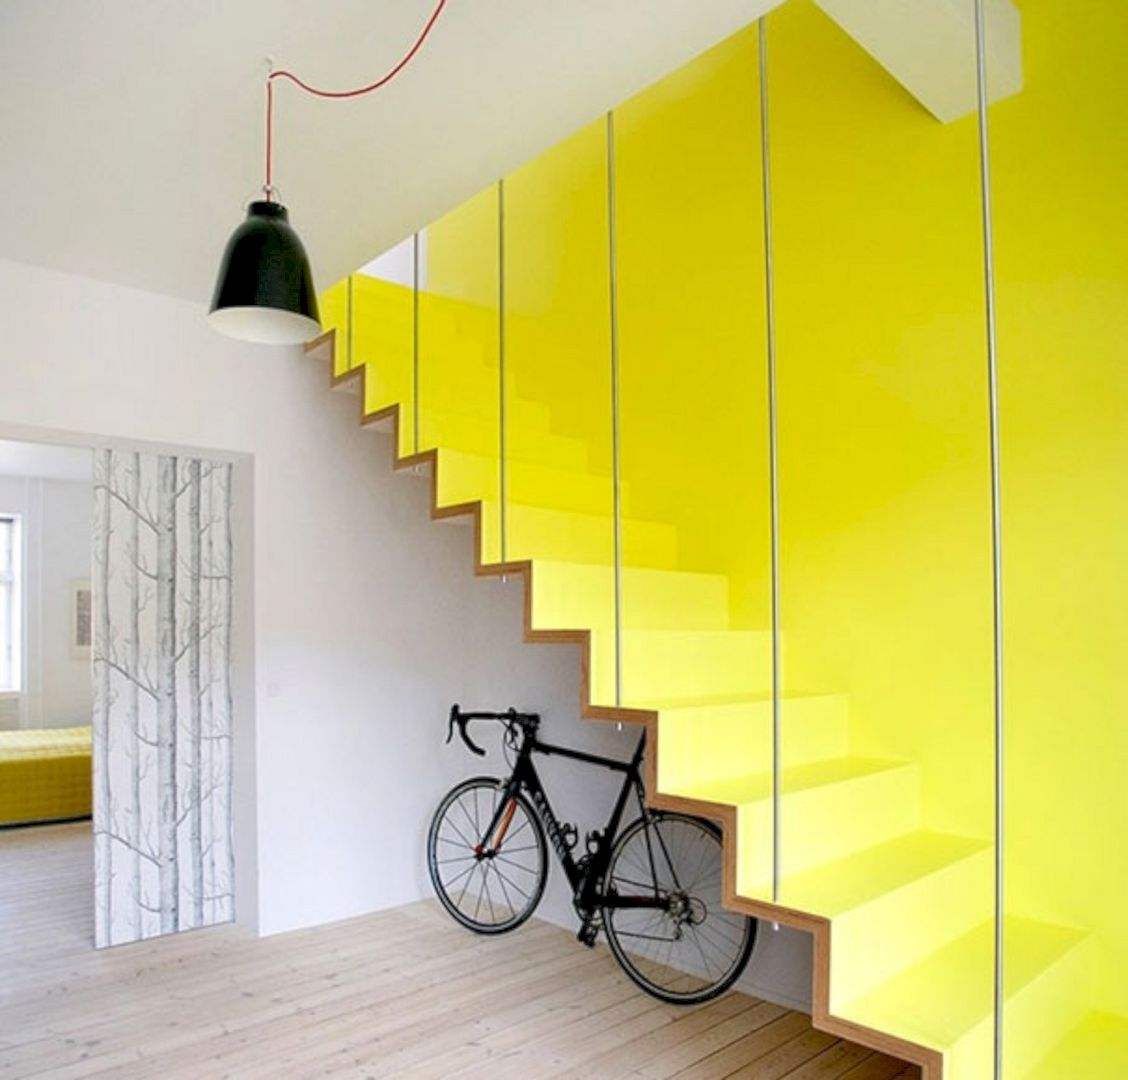 Impressive Staircase Design Inspirations | Prefab stairs, Staircases ...